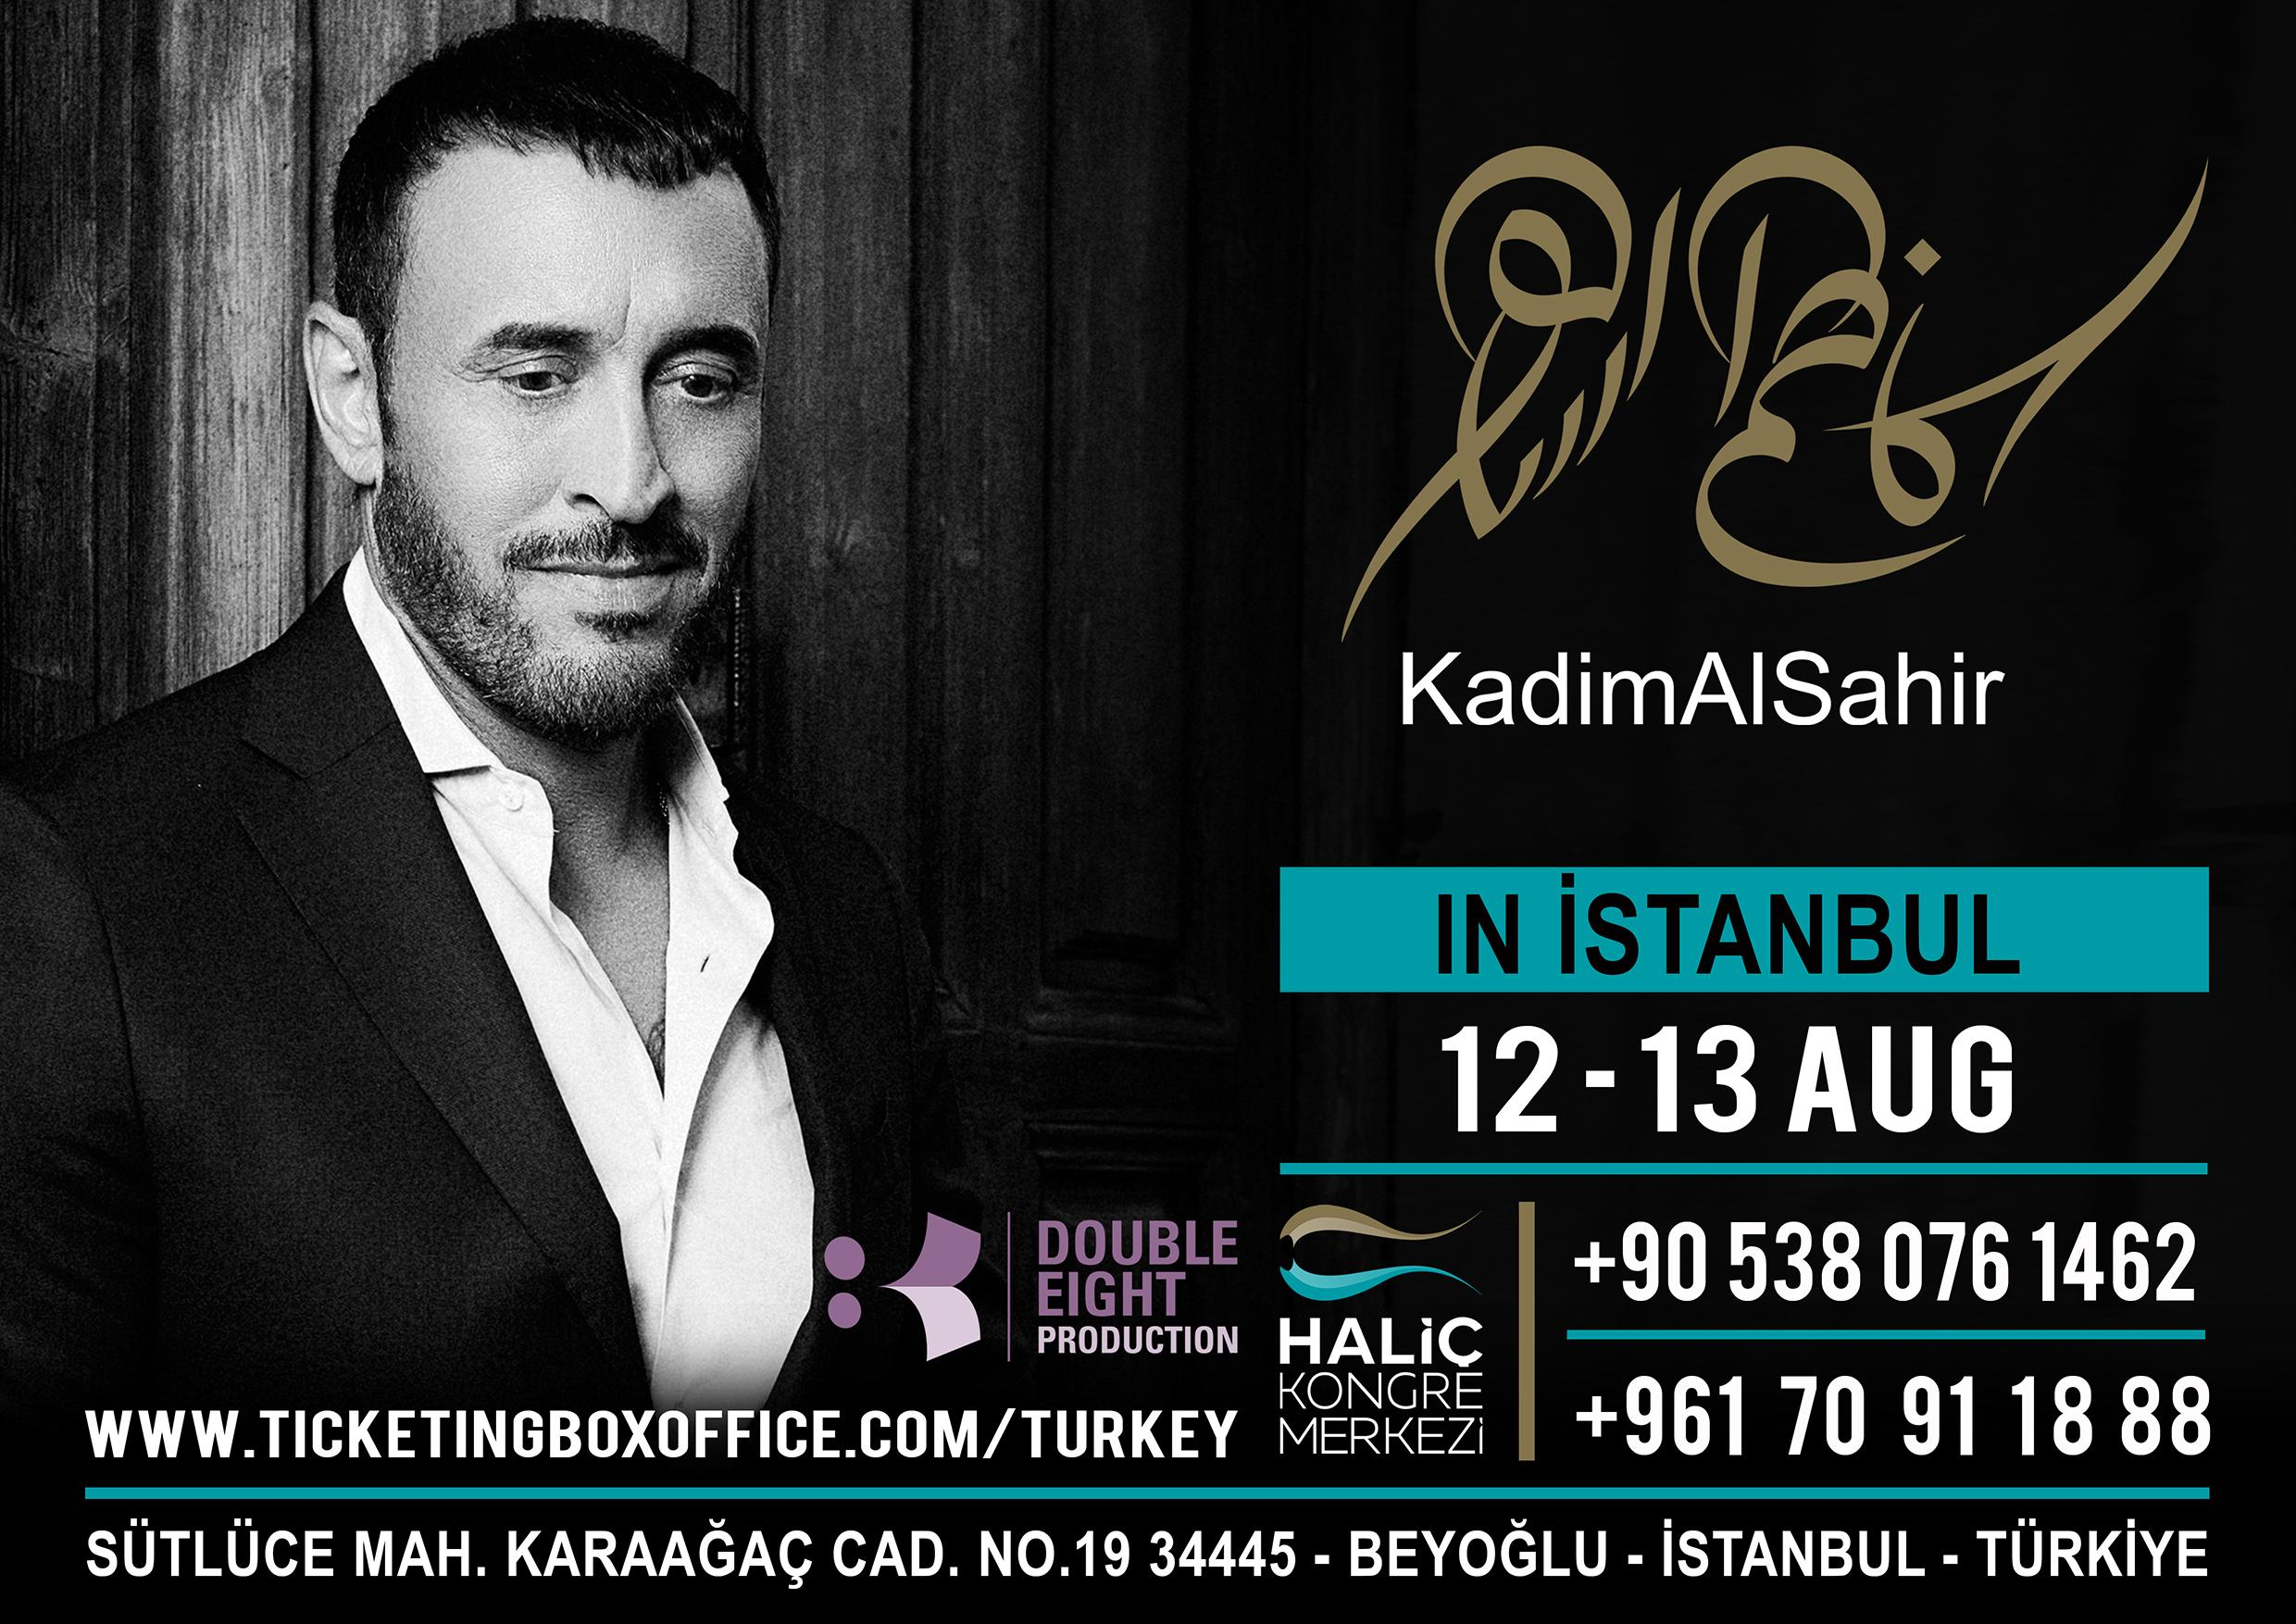 Kadim AL Sahir in Turkey